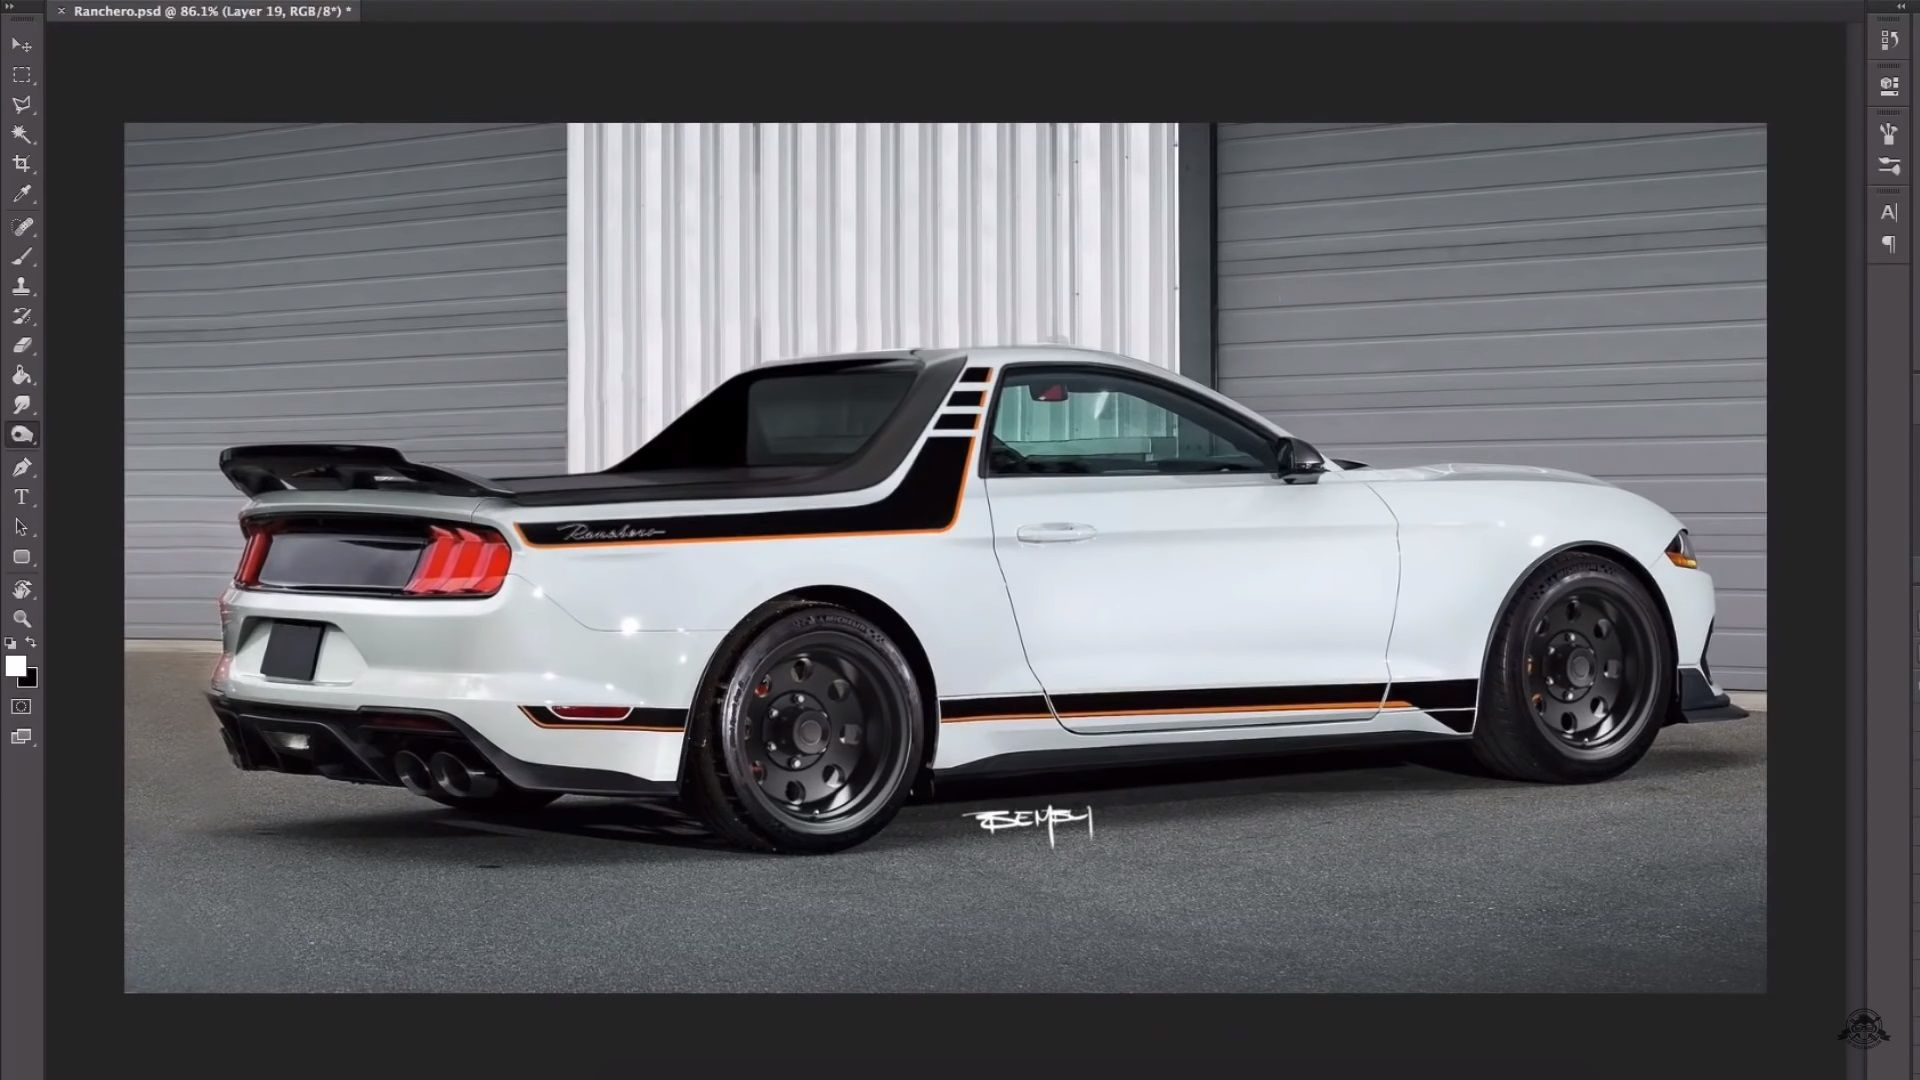 This Mustang Mach 1 Ford Ranchero Mashup Is Exactly The Car Ford Needs To Produce Top Speed In 2020 Car Ford Mustang Mach 1 Ford Mustang